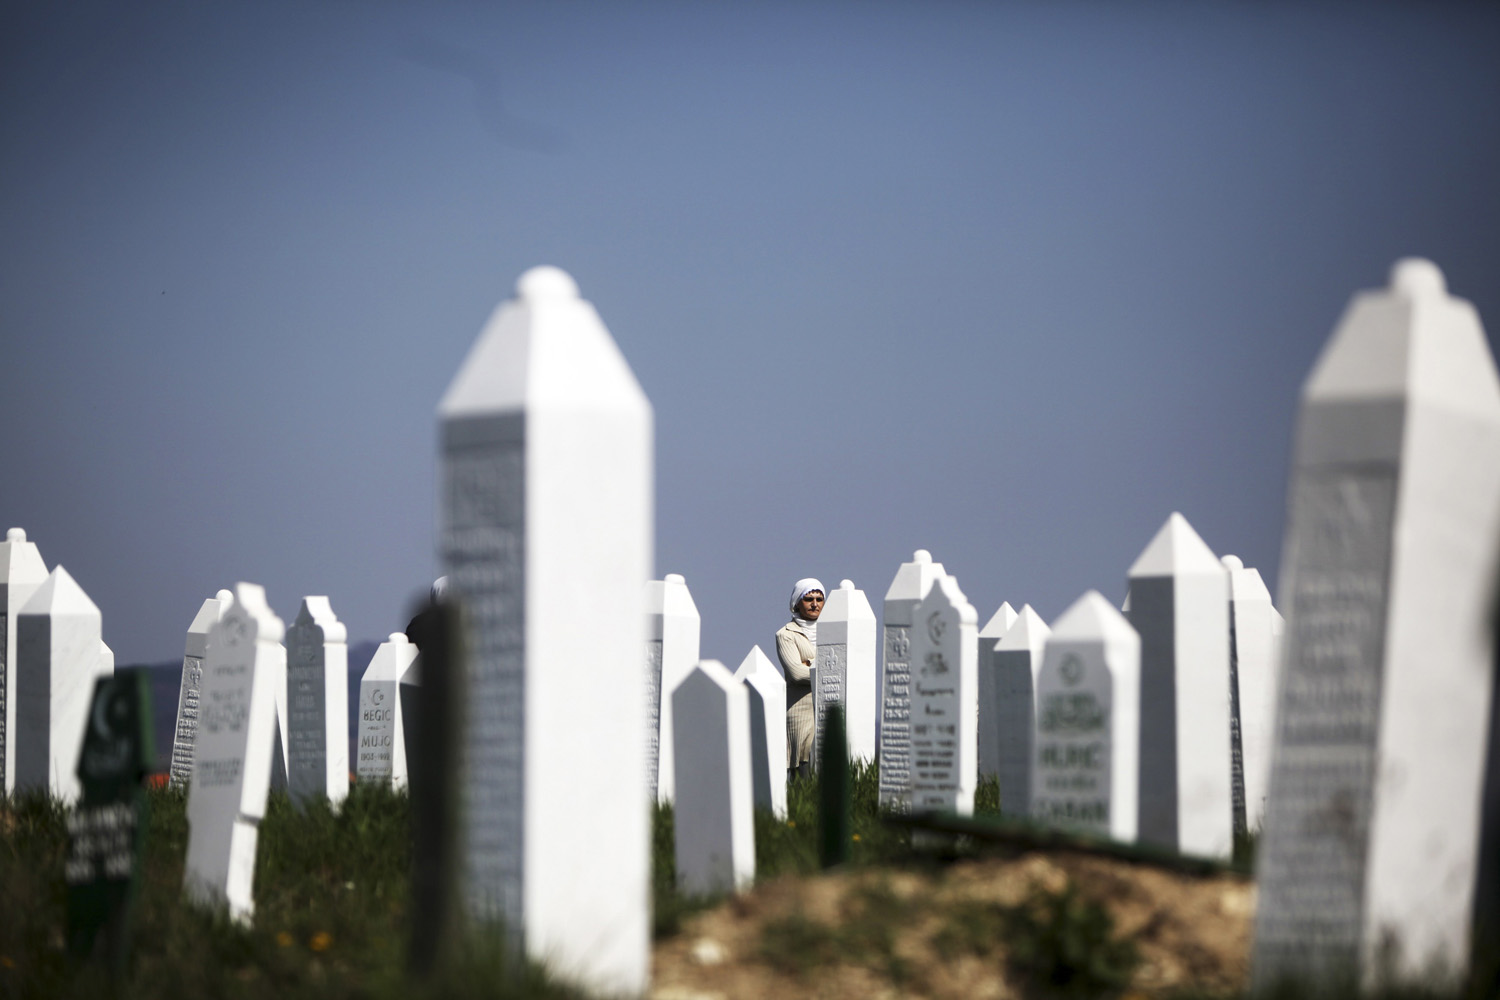 April 20, 2013. Bosnian Muslim women stand near graves before a mass funeral in the town of Vlasenica, in the Serbian part of Bosnia. The remains of some 11 Bosnian Muslims, killed by Serb forces during the country's 1992-1995 Bosnian war, were exhumed from mass graves near Vlasenica with more expected to be found.